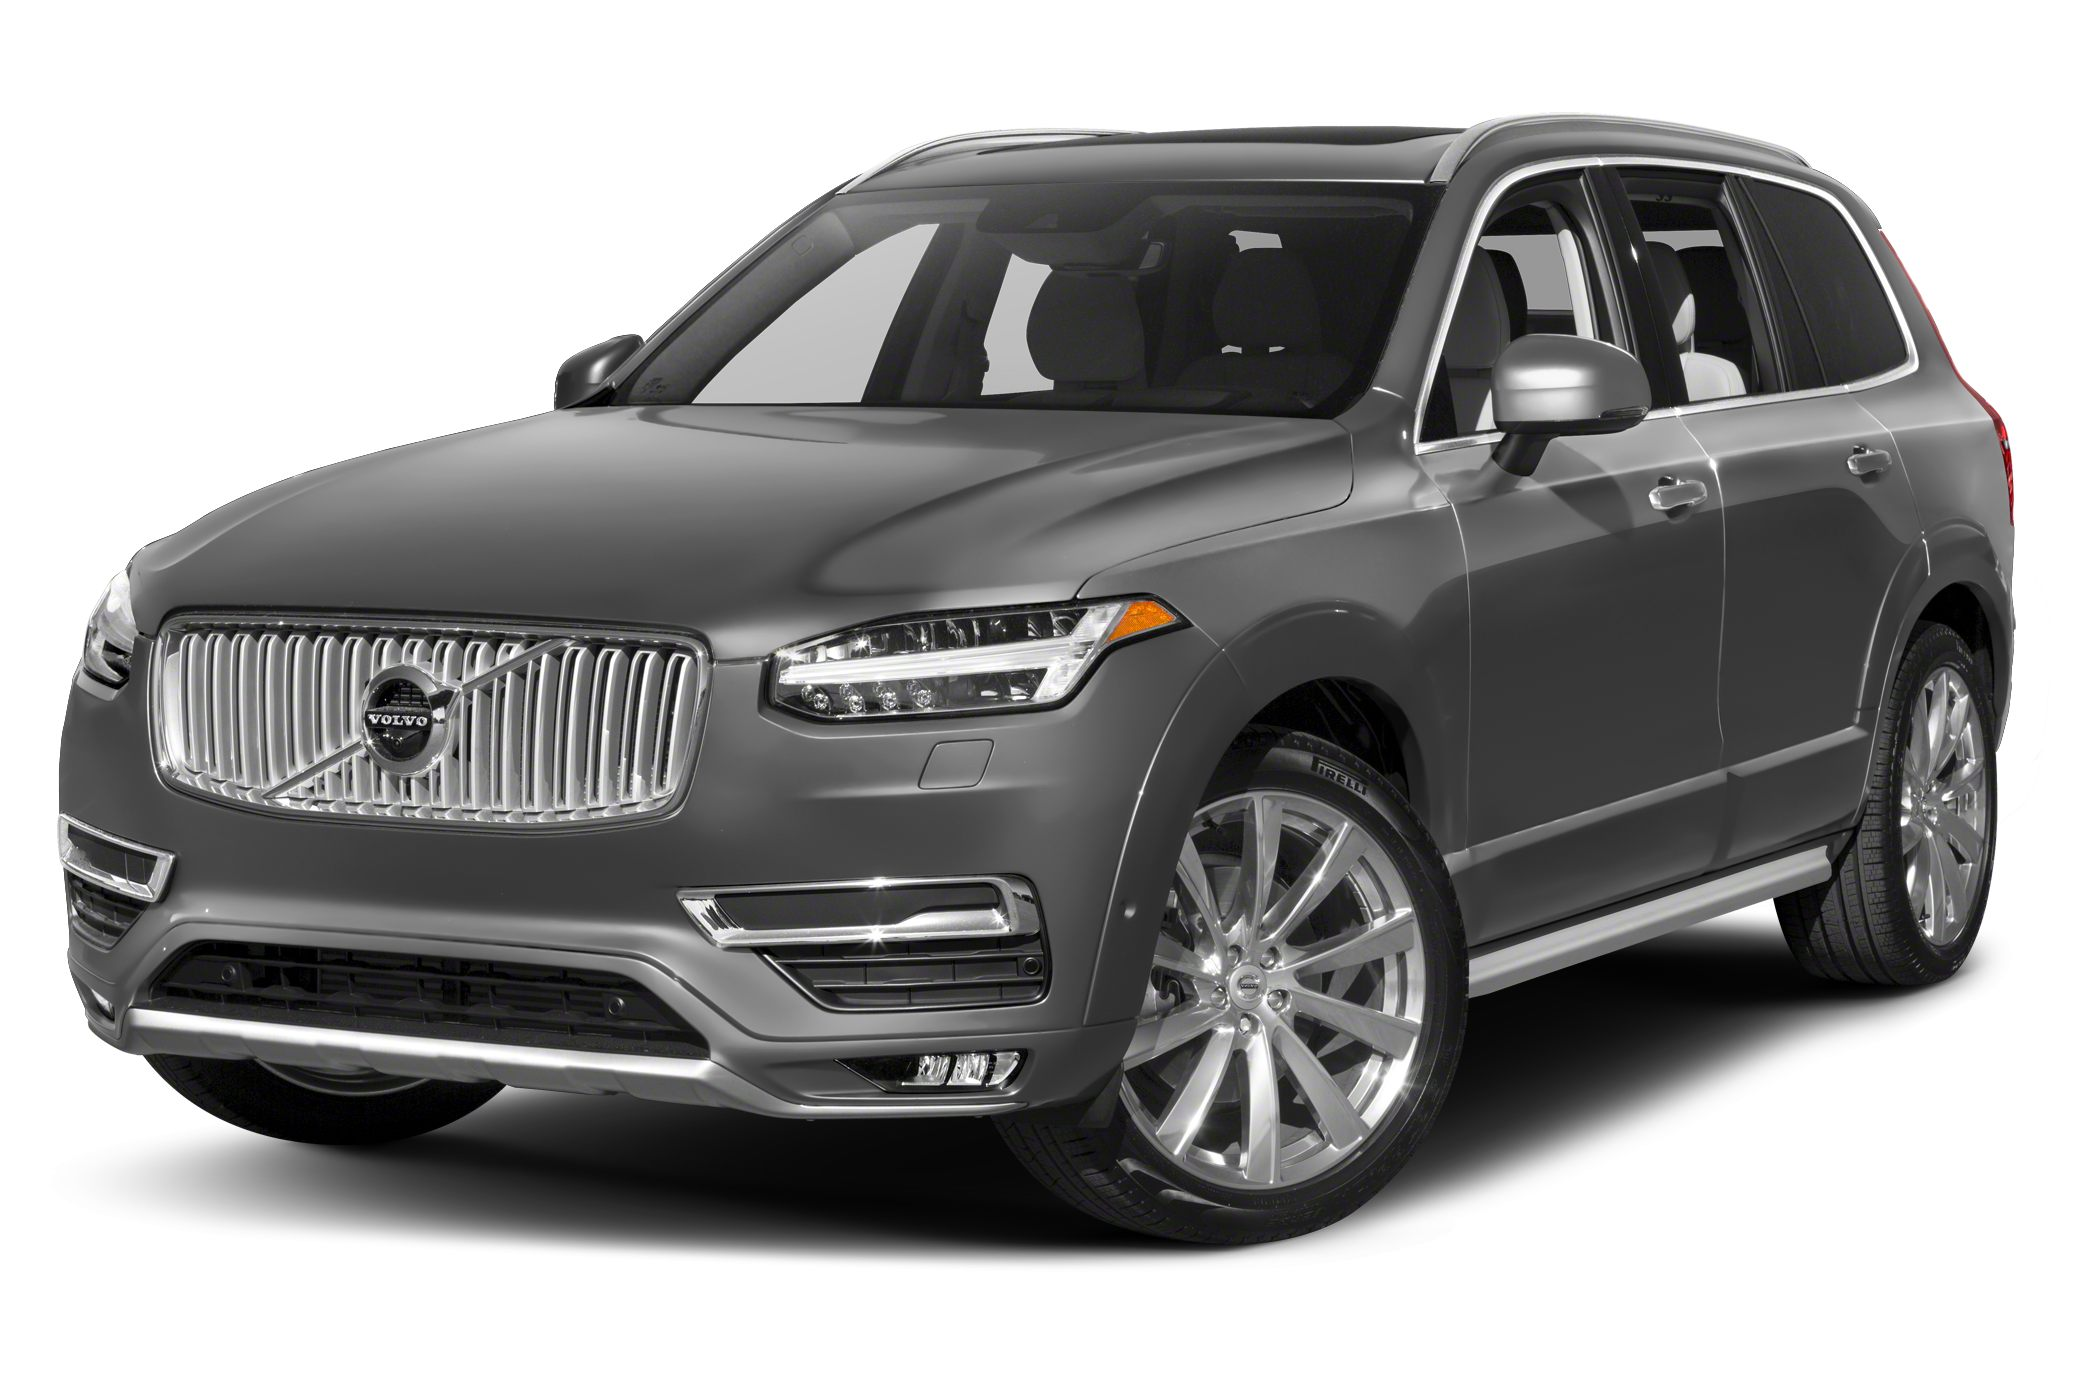 2018 Volvo XC90 T6 Inscription Safety equipment includes ABS Traction control Passenger Airbag